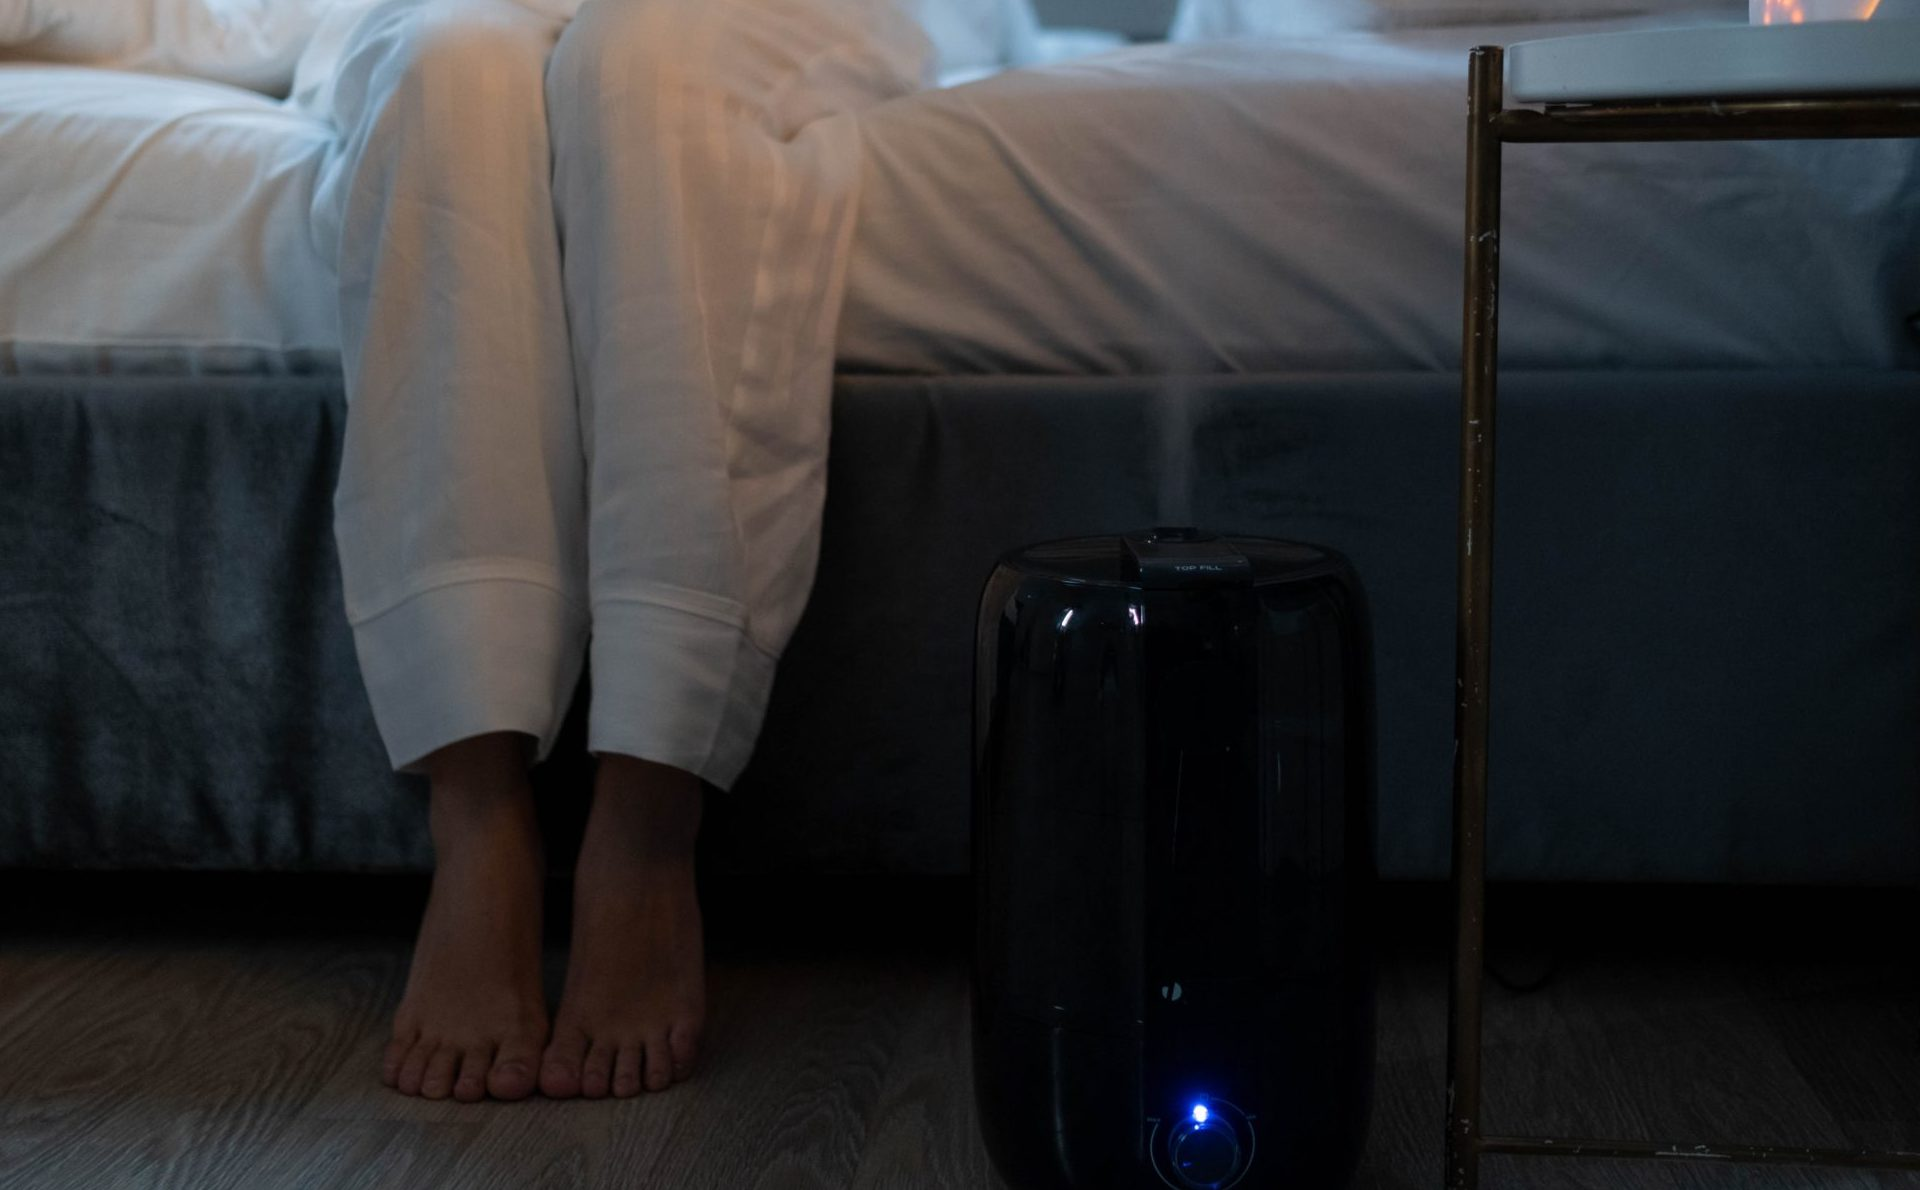 humidifier next to woman sitting on bed